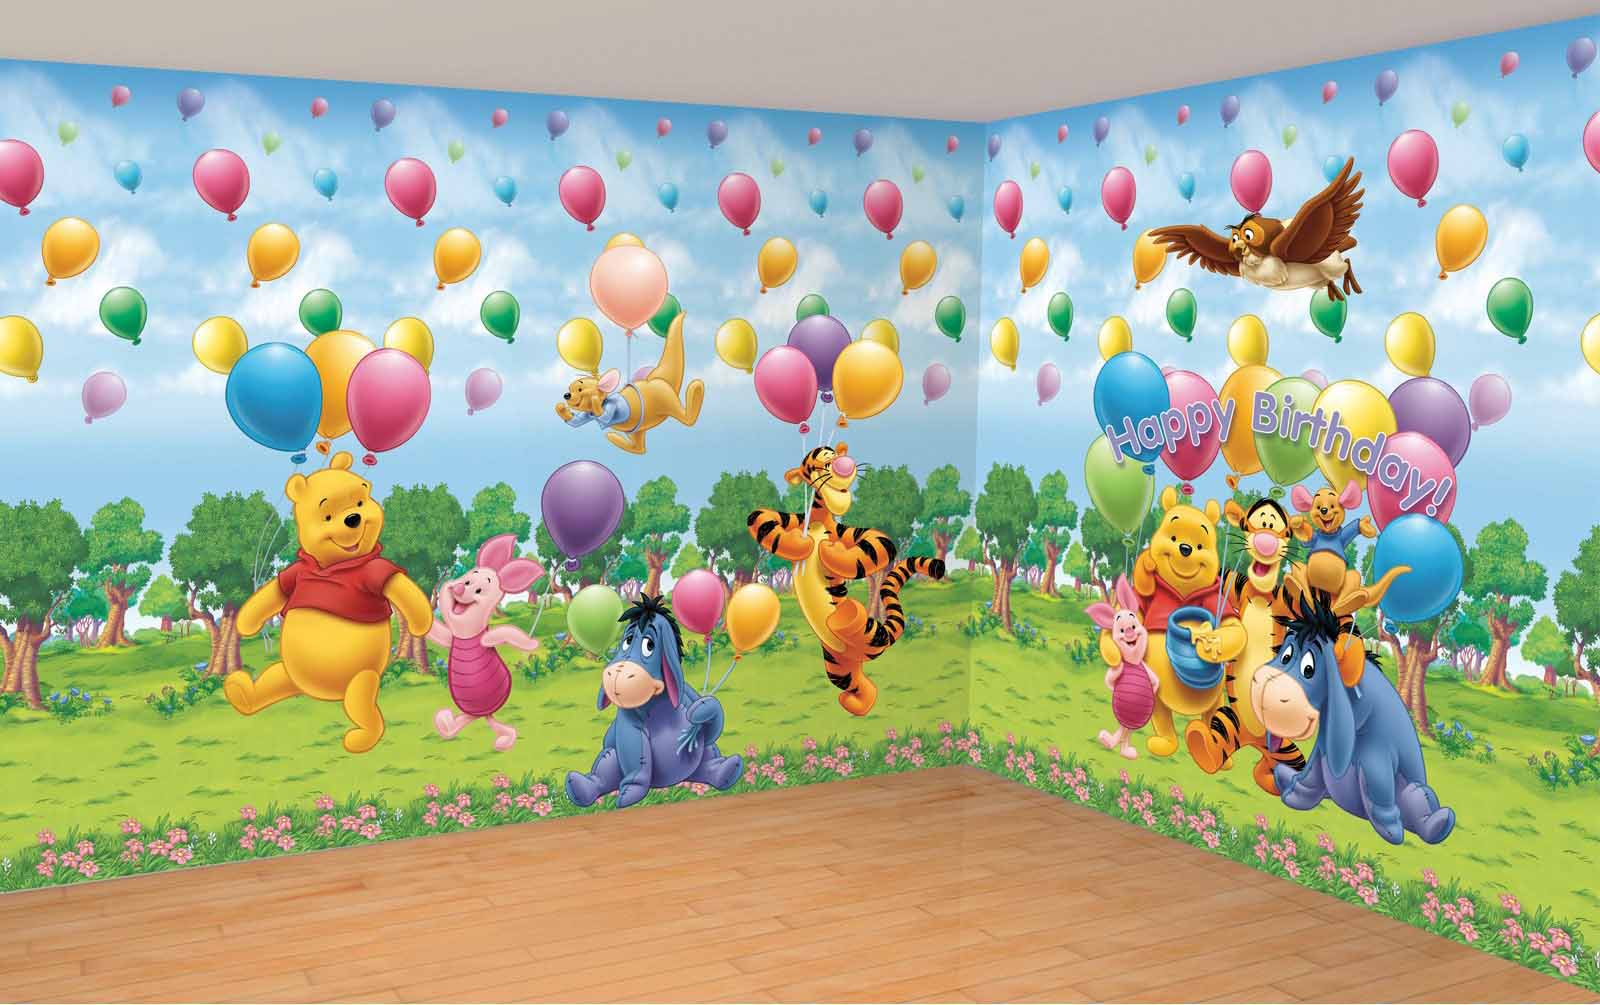 3d wallpaper for kids bedroom Wallpaper for childrens room